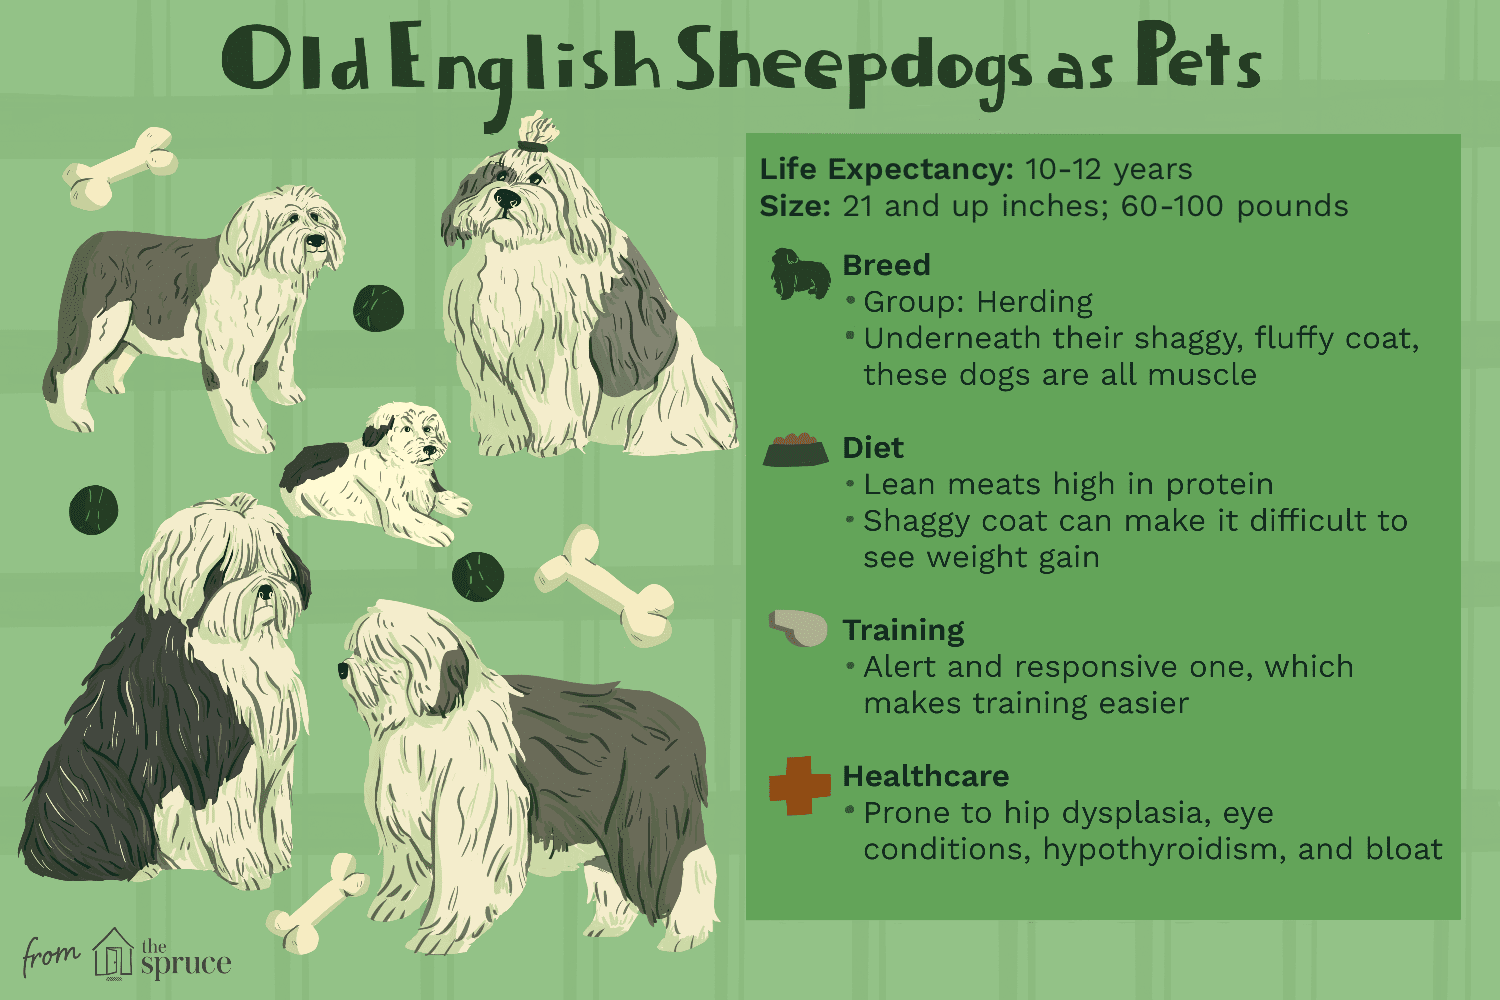 old english sheepdogs as pets illustration